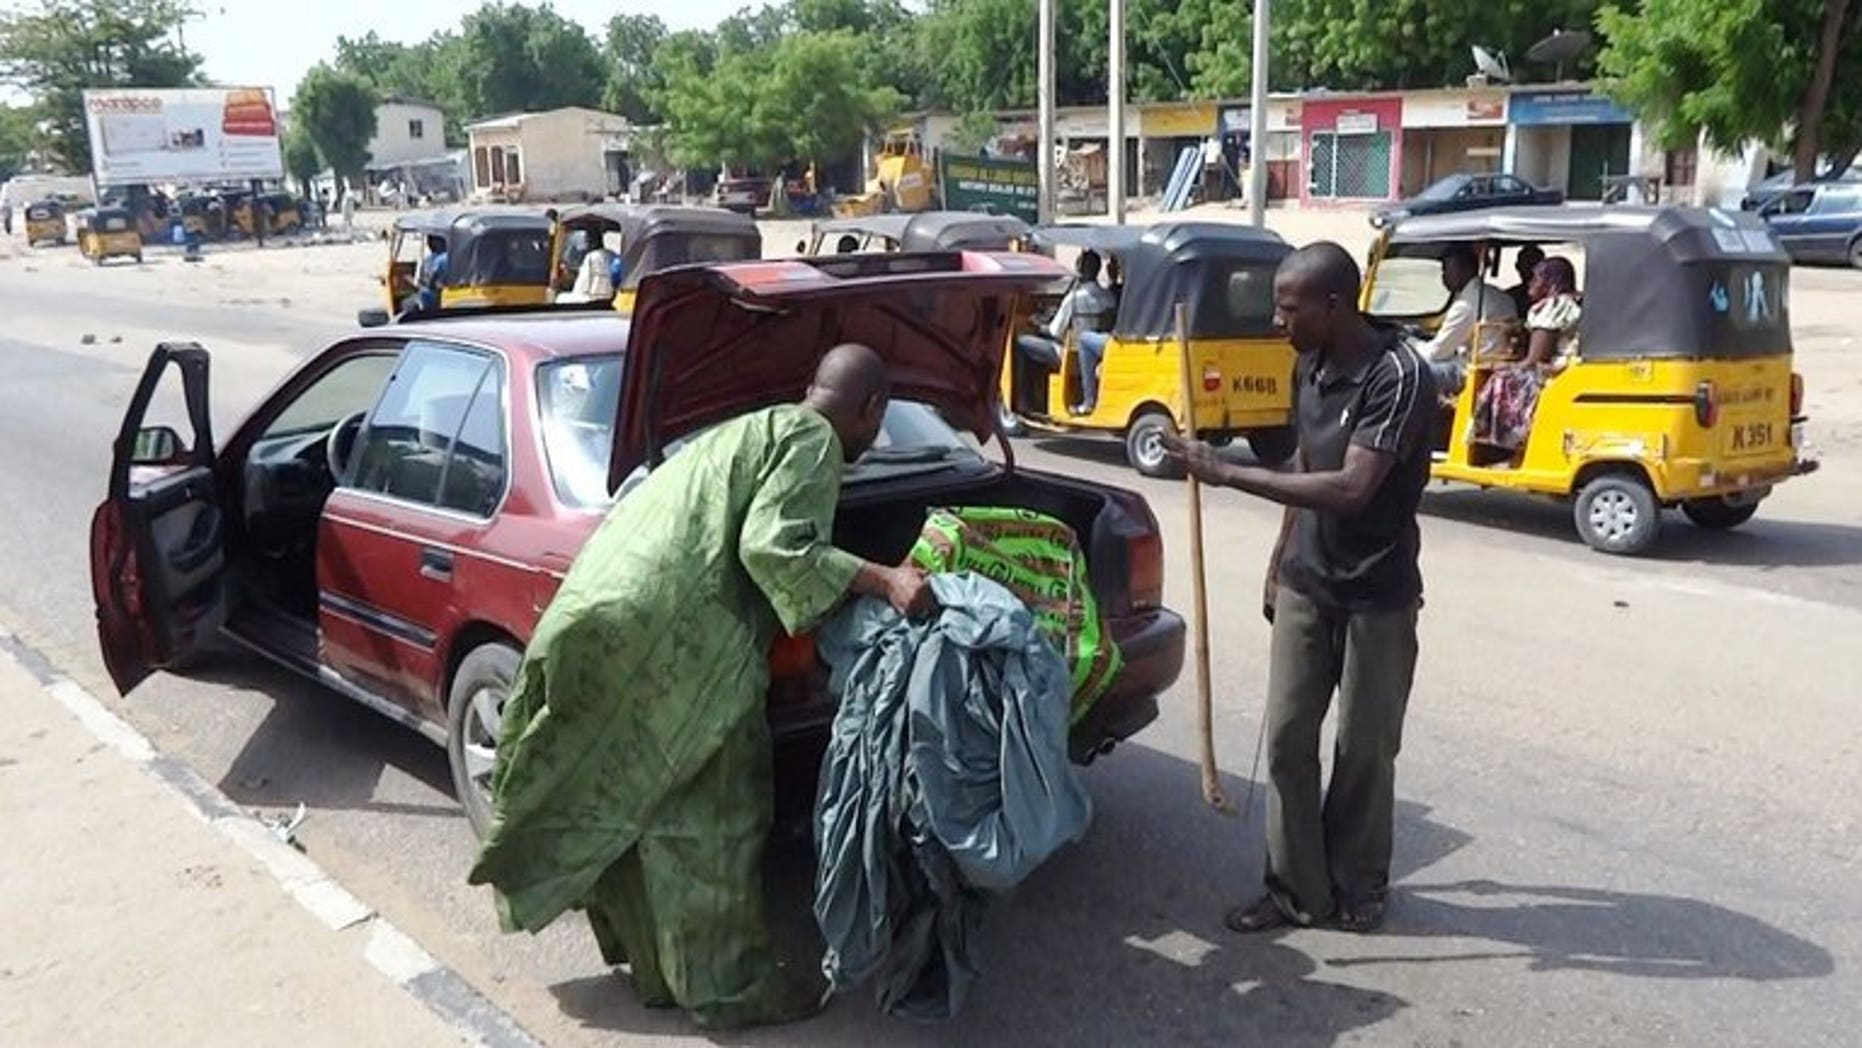 A vigilante peers into the trunk of a car looking for weapons on July 19, 2013 in Maiduguri, where Boko Haram has carried out most of its deadly attacks.